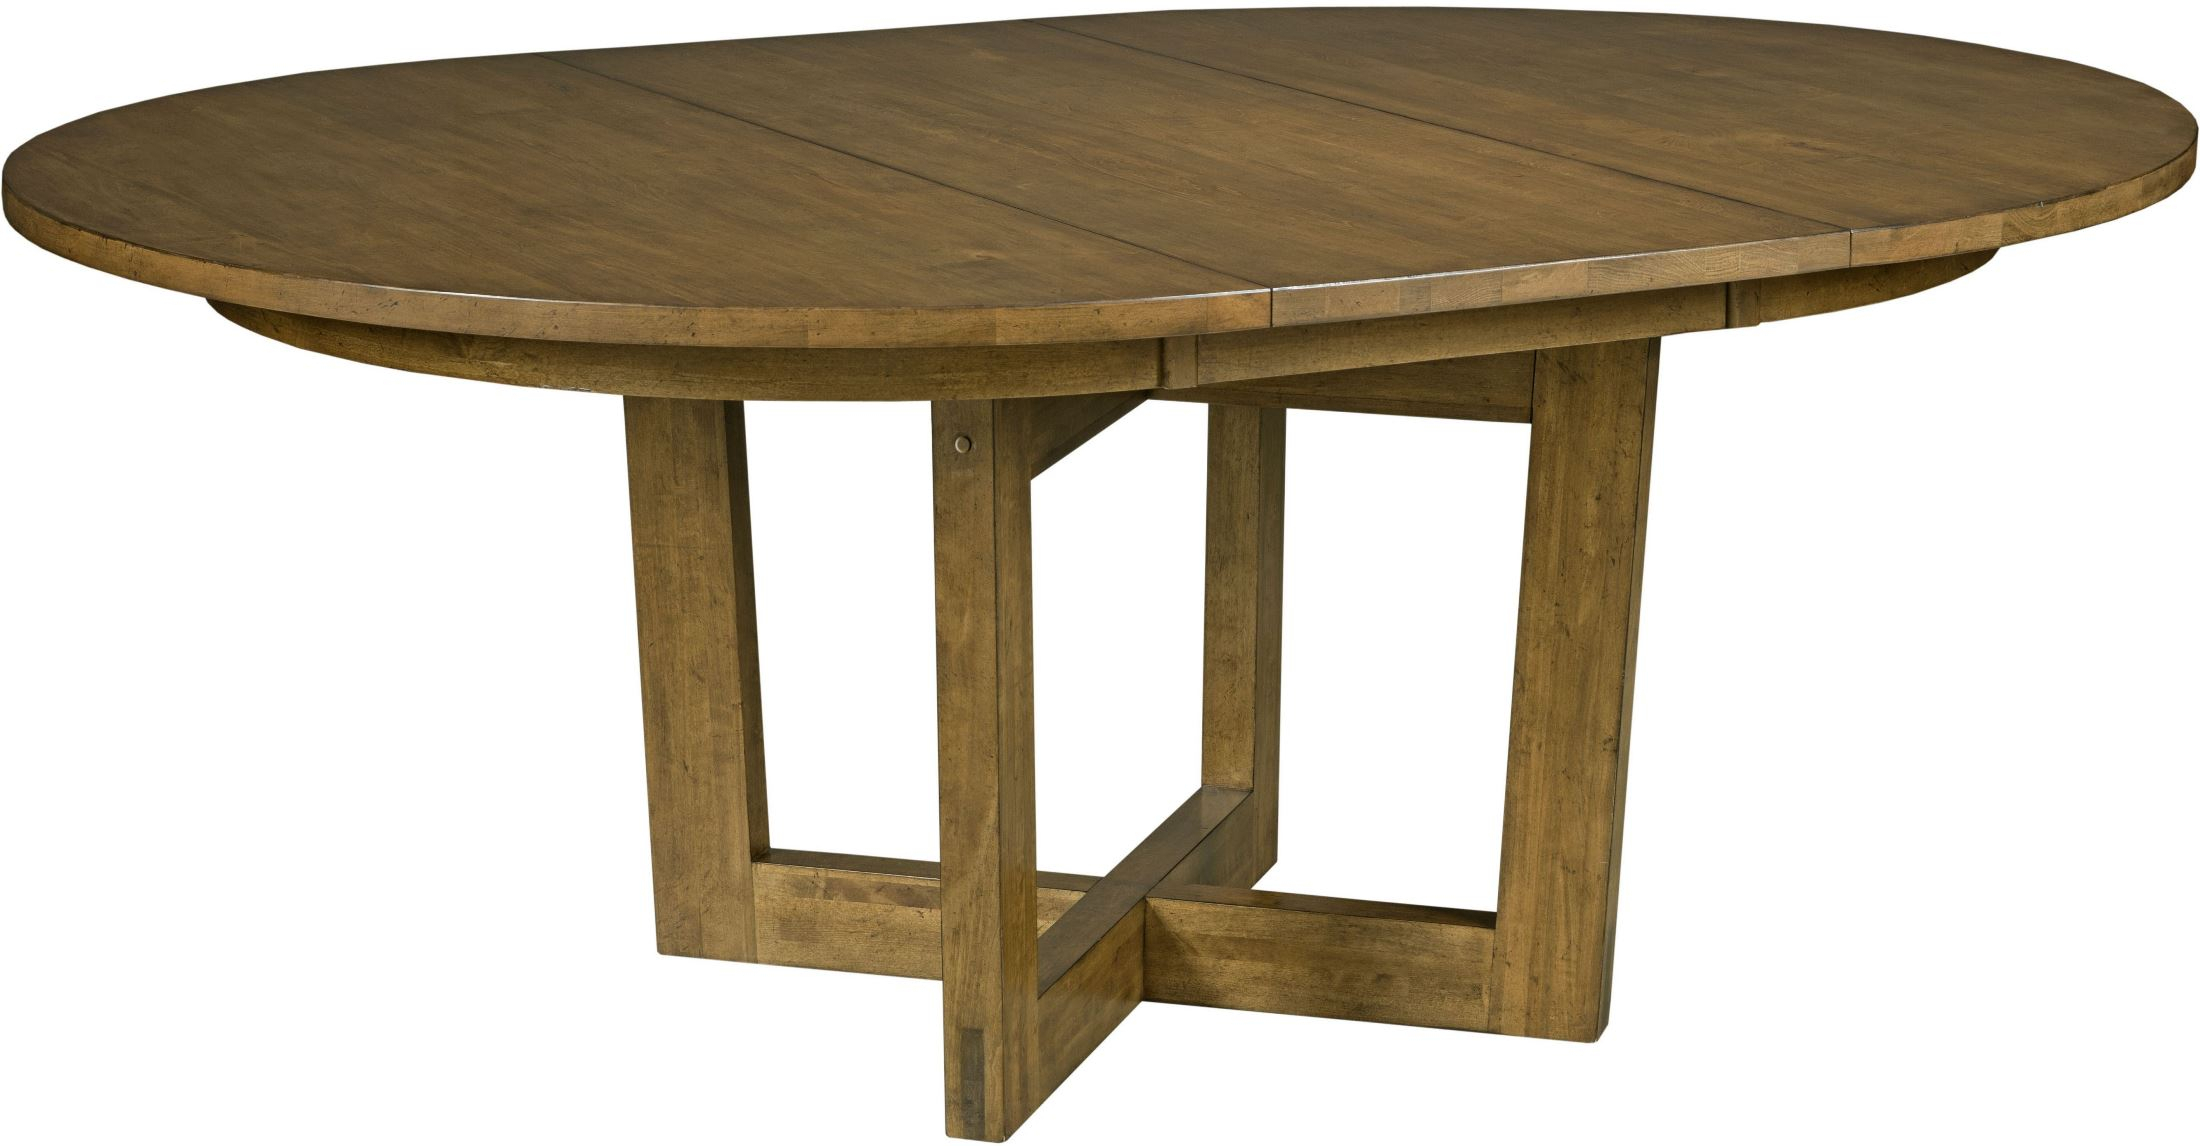 "Traverse Brown 54"" Drop Leaf Round Dining Table Pertaining To Newest Montalvo Round Dining Tables (View 22 of 25)"